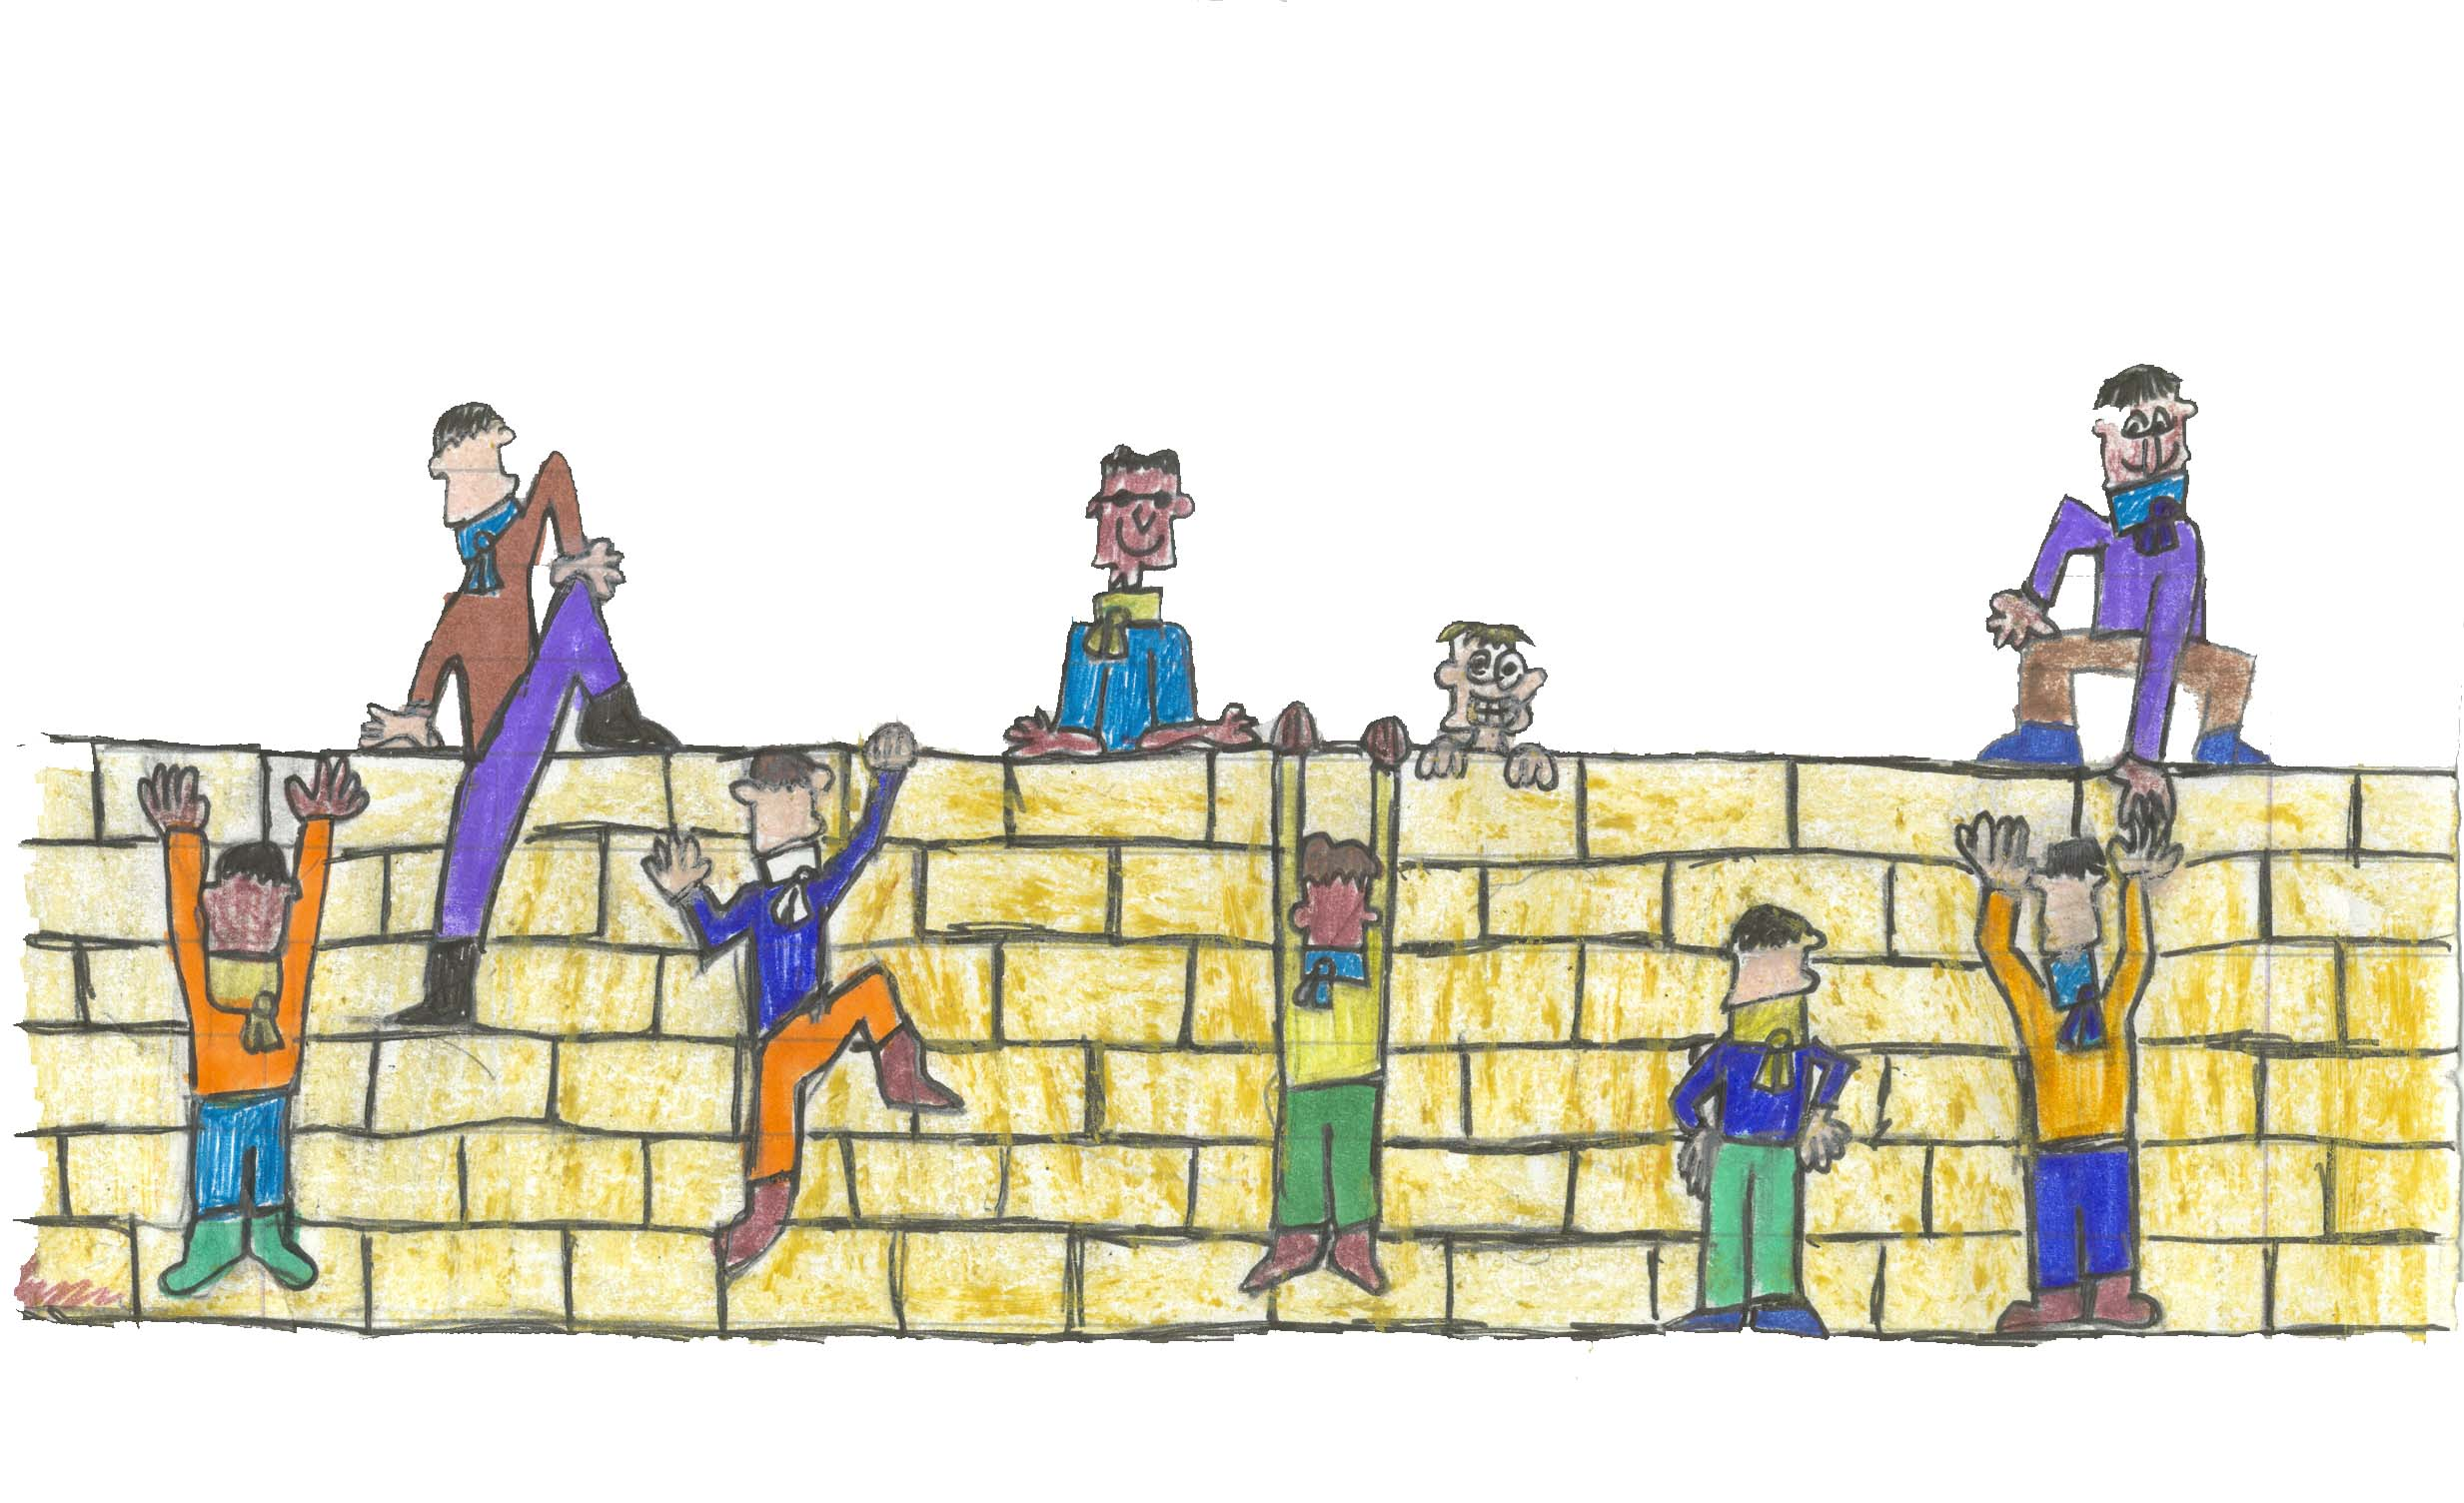 Youth have the right to grow up believing that a peaceful and safe future is possible. (Drawing by Lev, young journalist, 2005